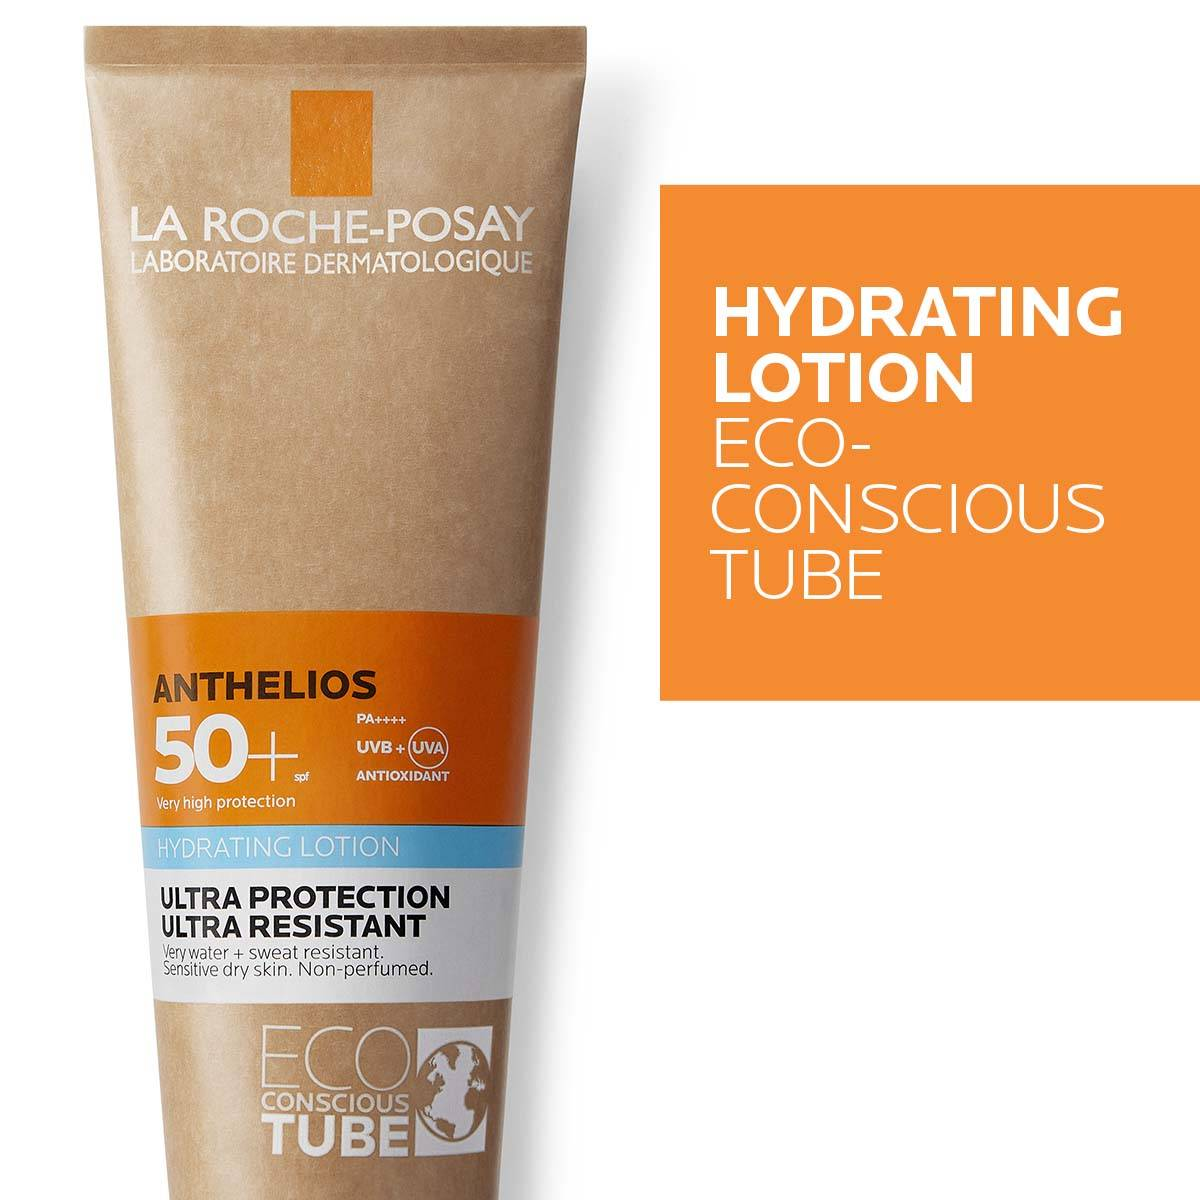 Anthelios Hydrating Lotion